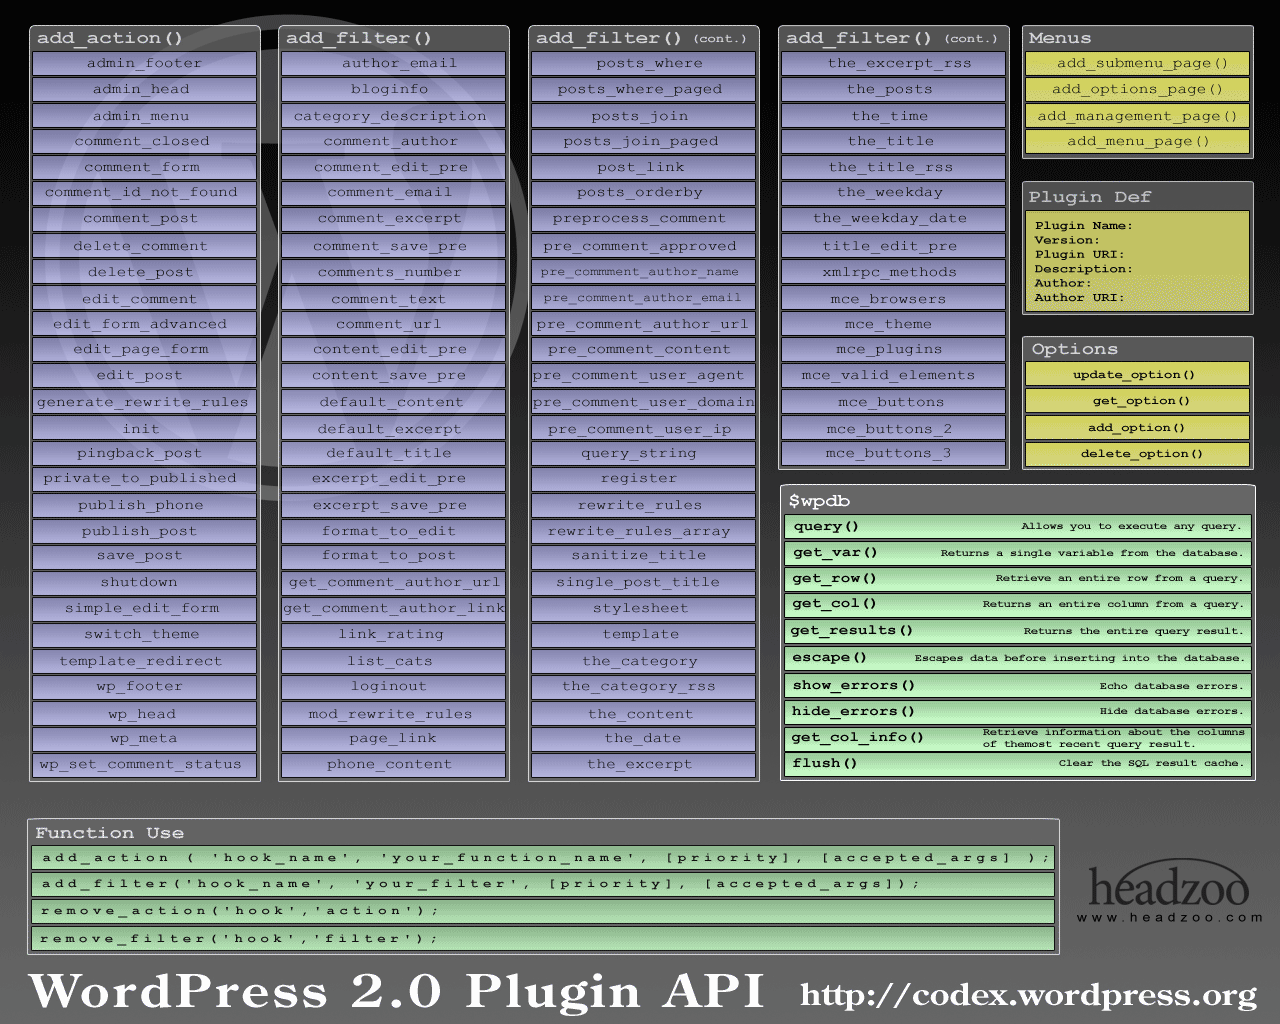 wordpress plugin API | cheat sheets in 2019 | Cheat sheets